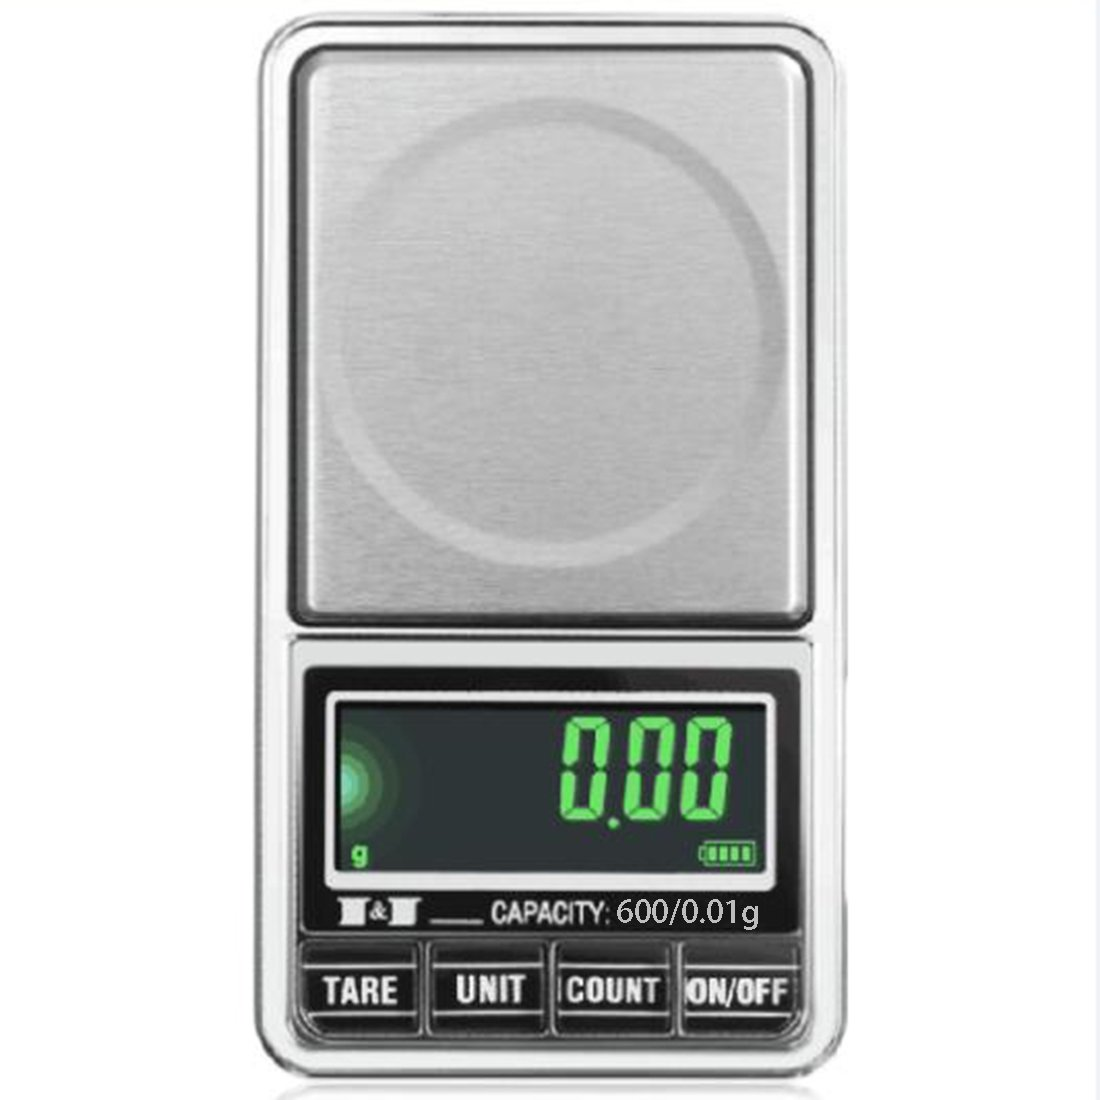 Electronic Digital LCD Pocket Scale USB Interface Jewelry Scales Multi-Purpose Kitchen Scale Luwu-Store TRTA11A